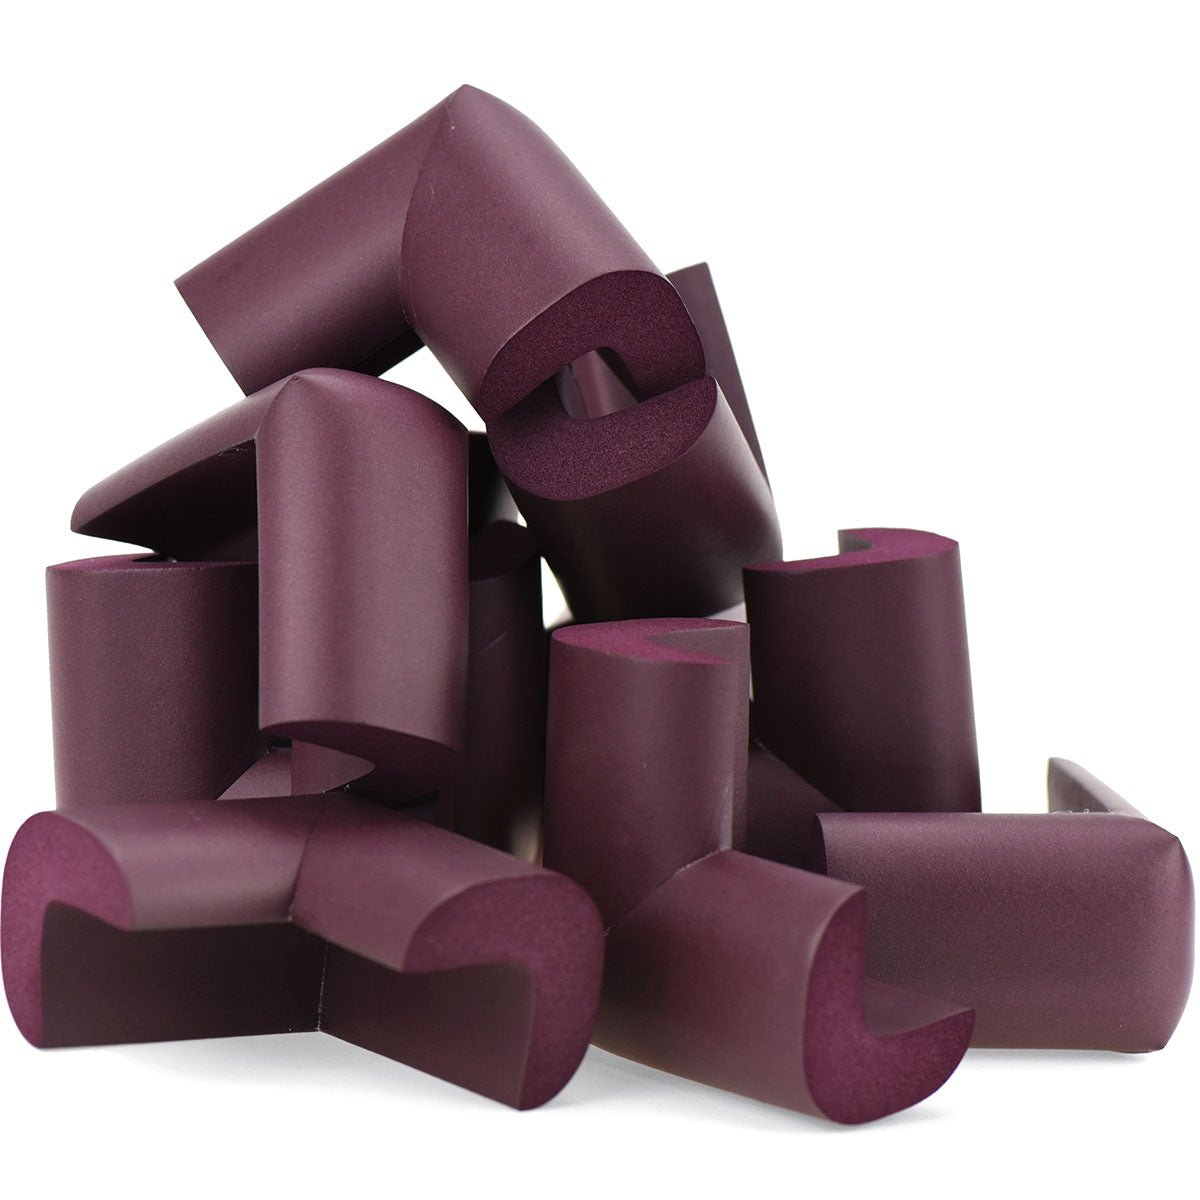 12 Pieces Maroon Jumbo L-Shaped Foam Corner Protectors